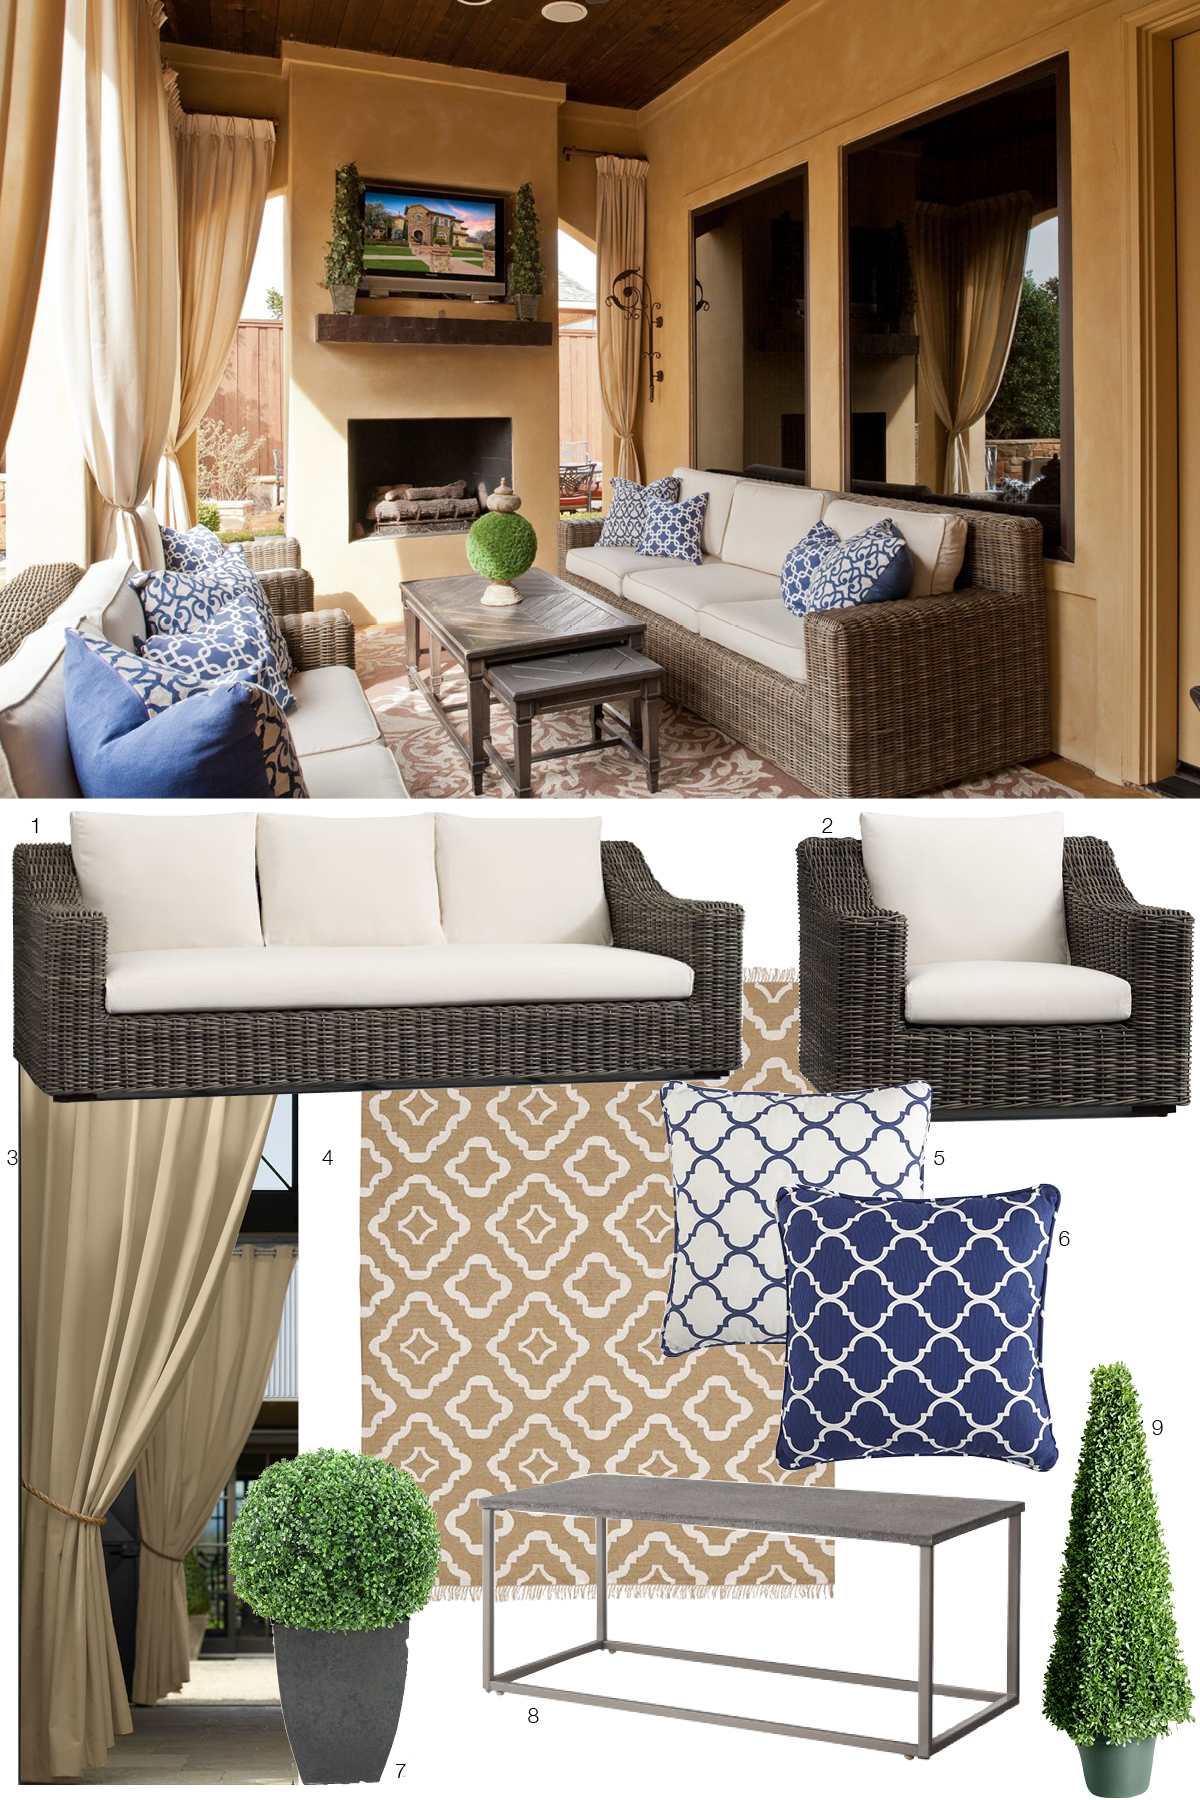 Room Re-do & Sales: Outdoor Oasis